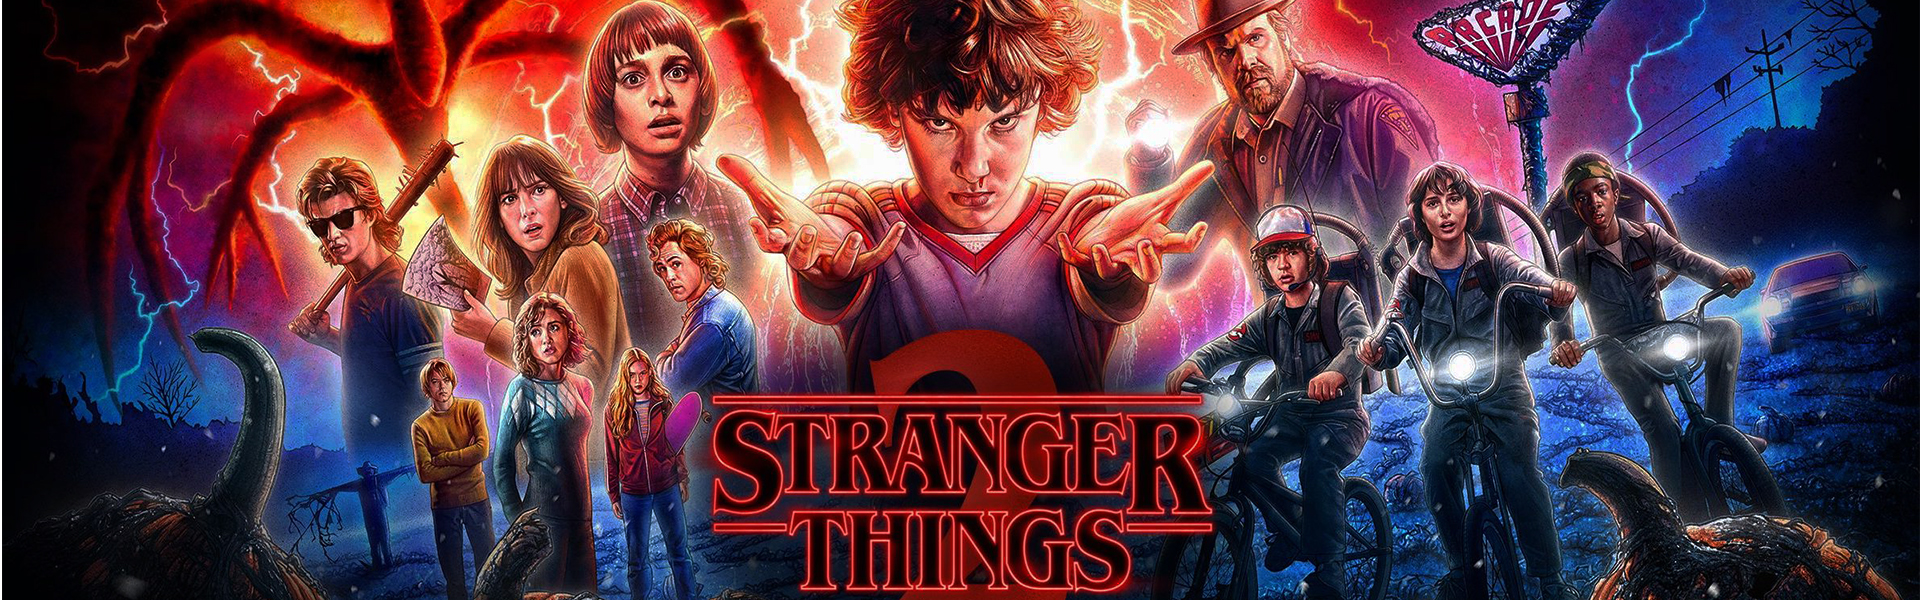 Stranger Things ayudo a un Museo de Ciencias a vender 400 mil dólares-NATION